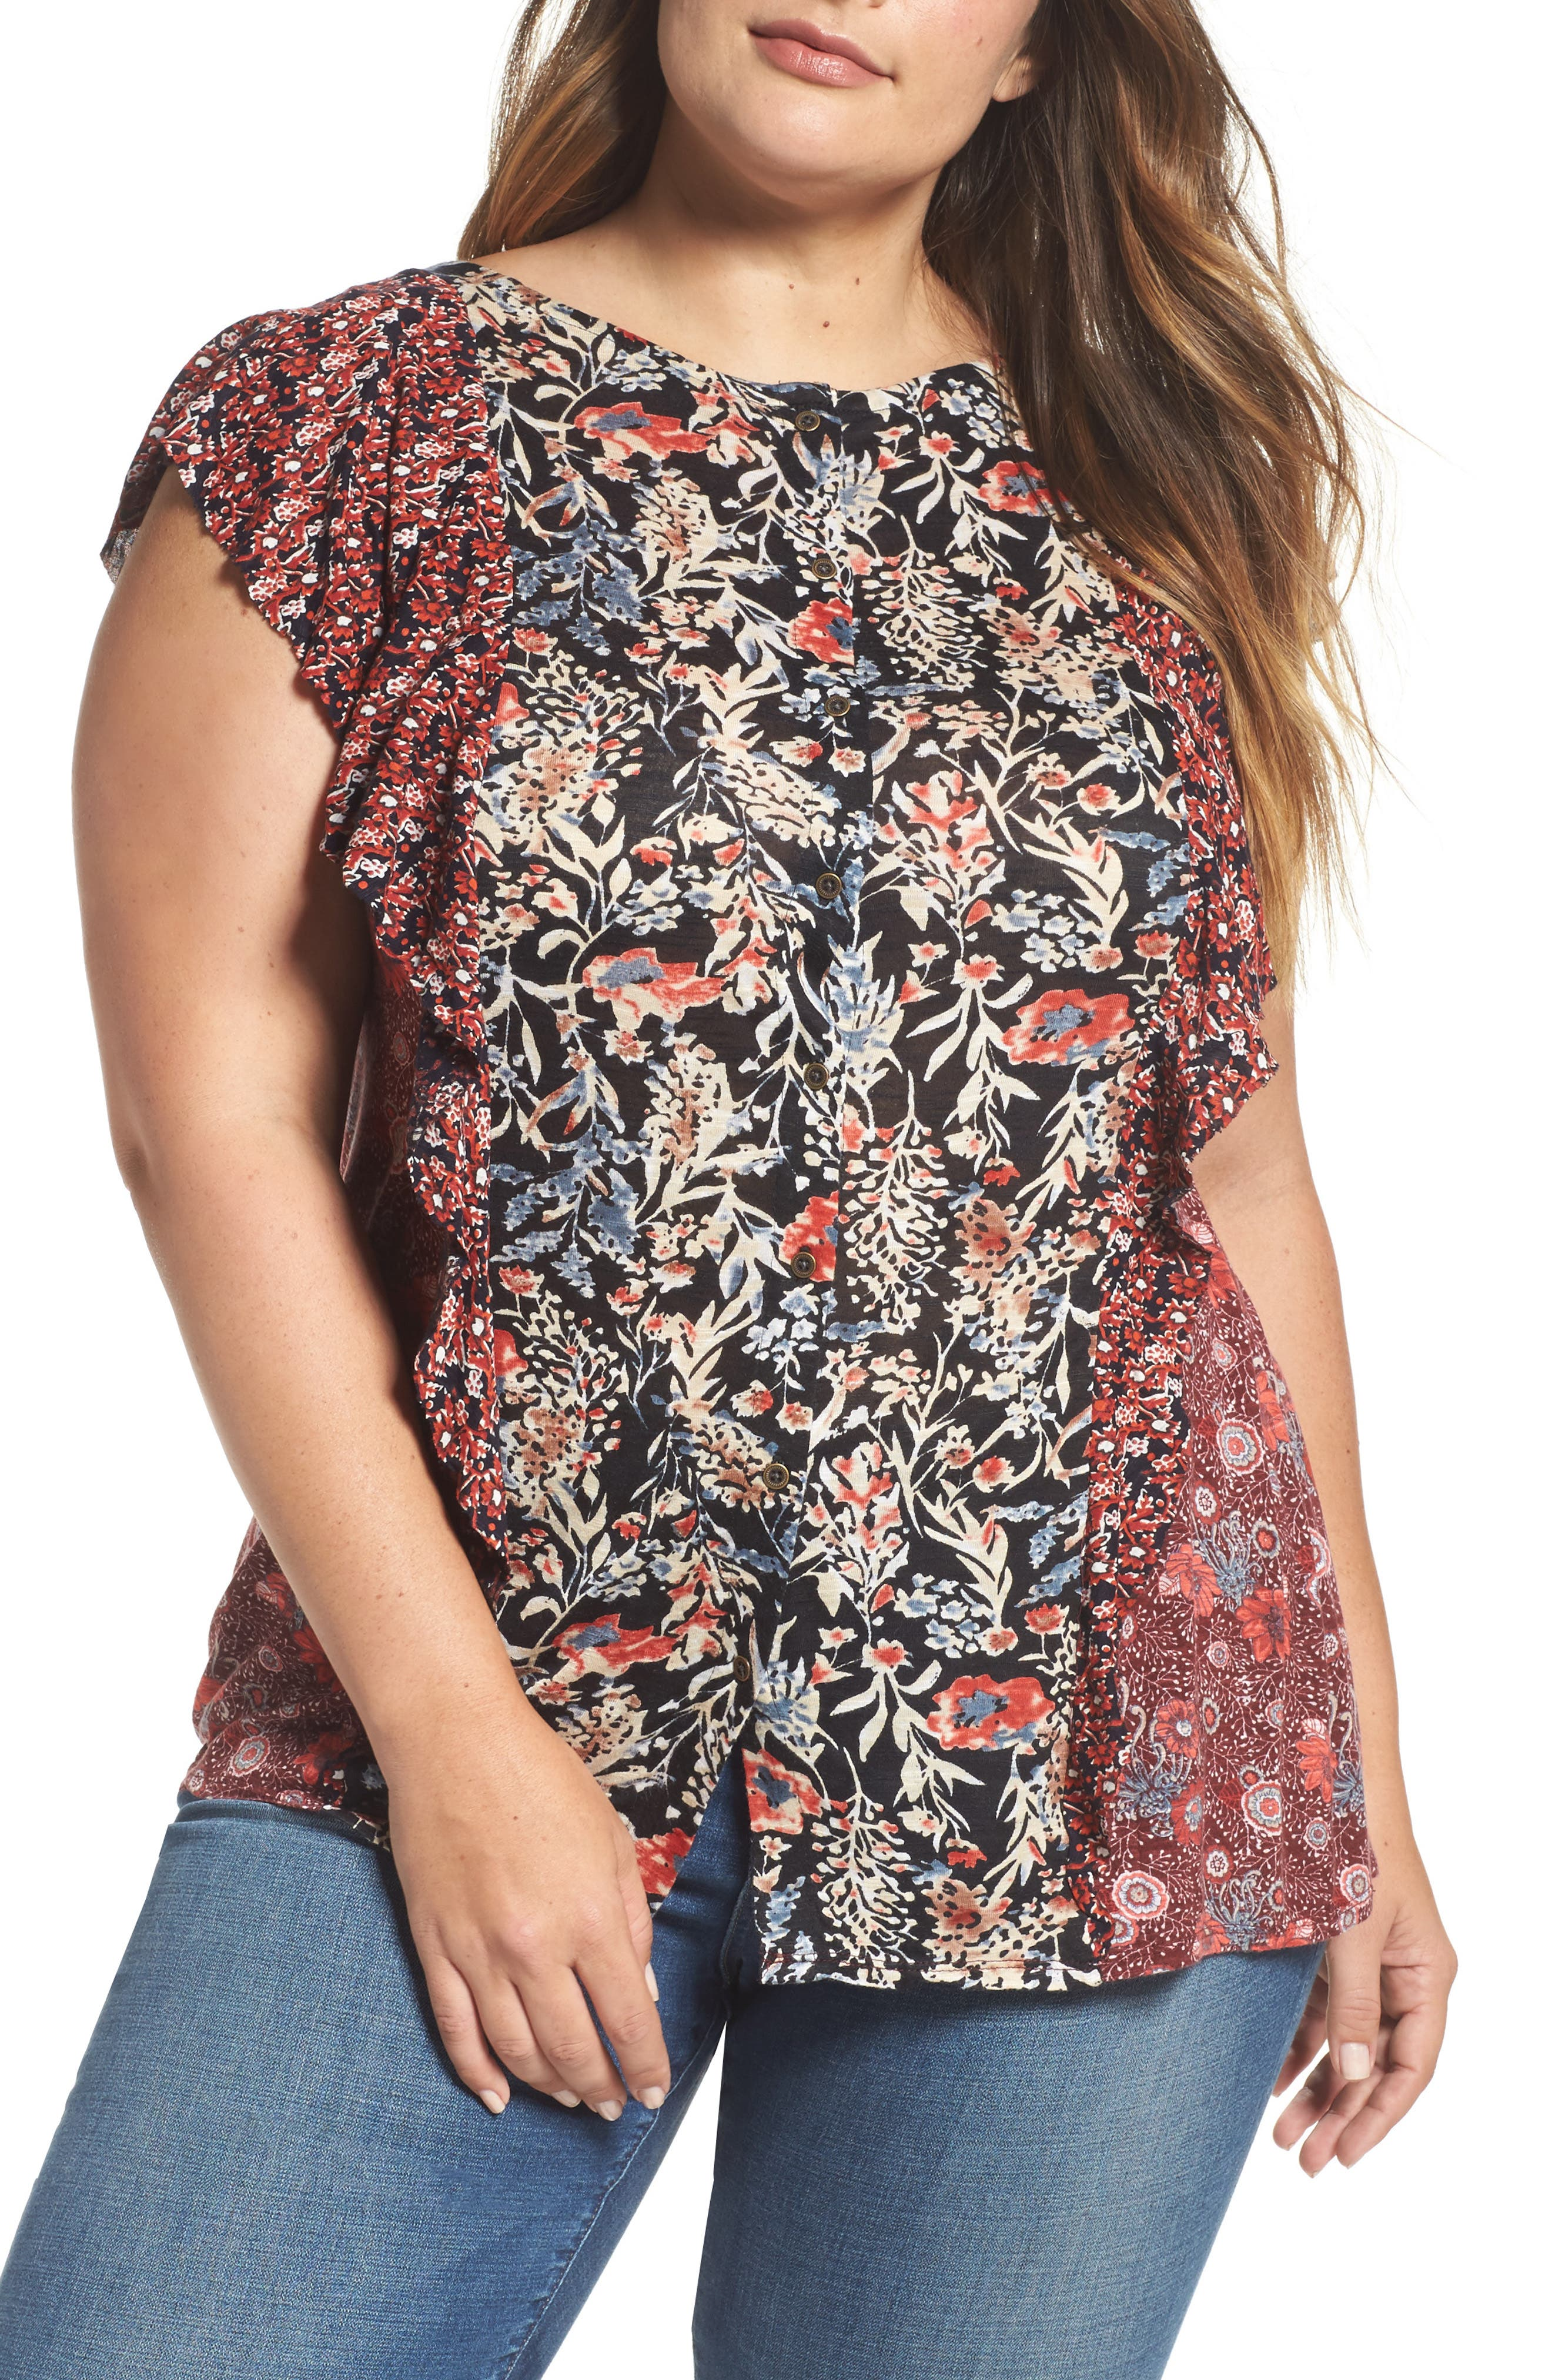 Alternate Image 1 Selected - Lucky Brand Mixed Print Ruffle Top (Plus Size)